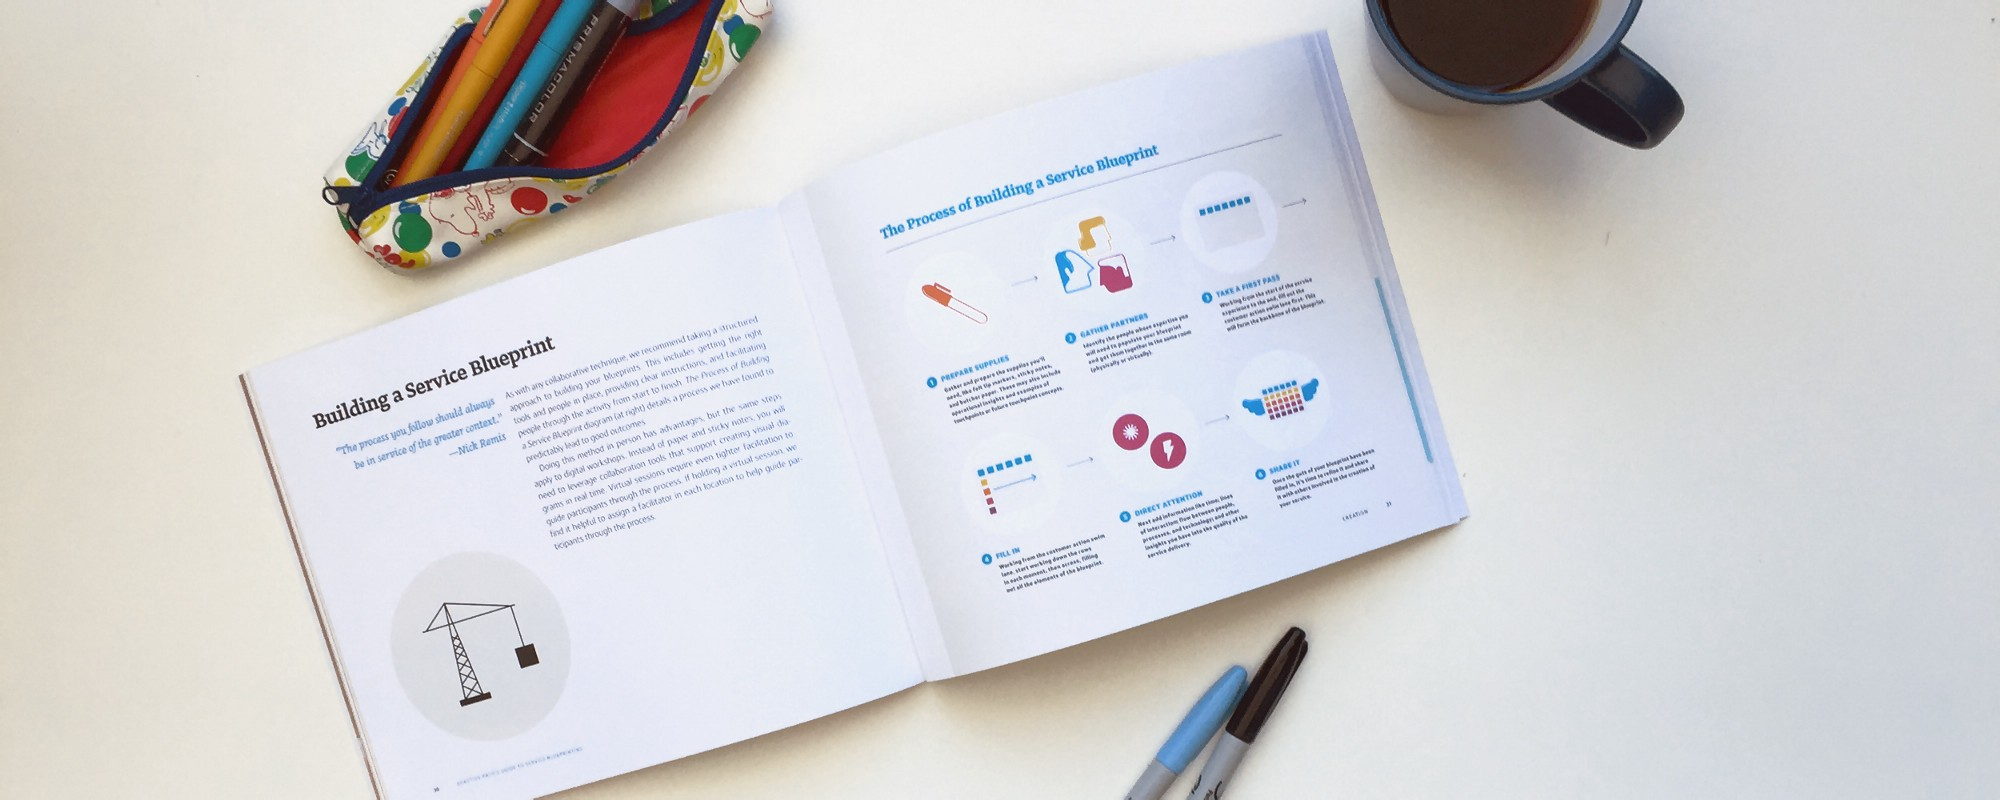 Download our guide to service blueprinting one design community download our guide to service blueprinting one design community medium malvernweather Images